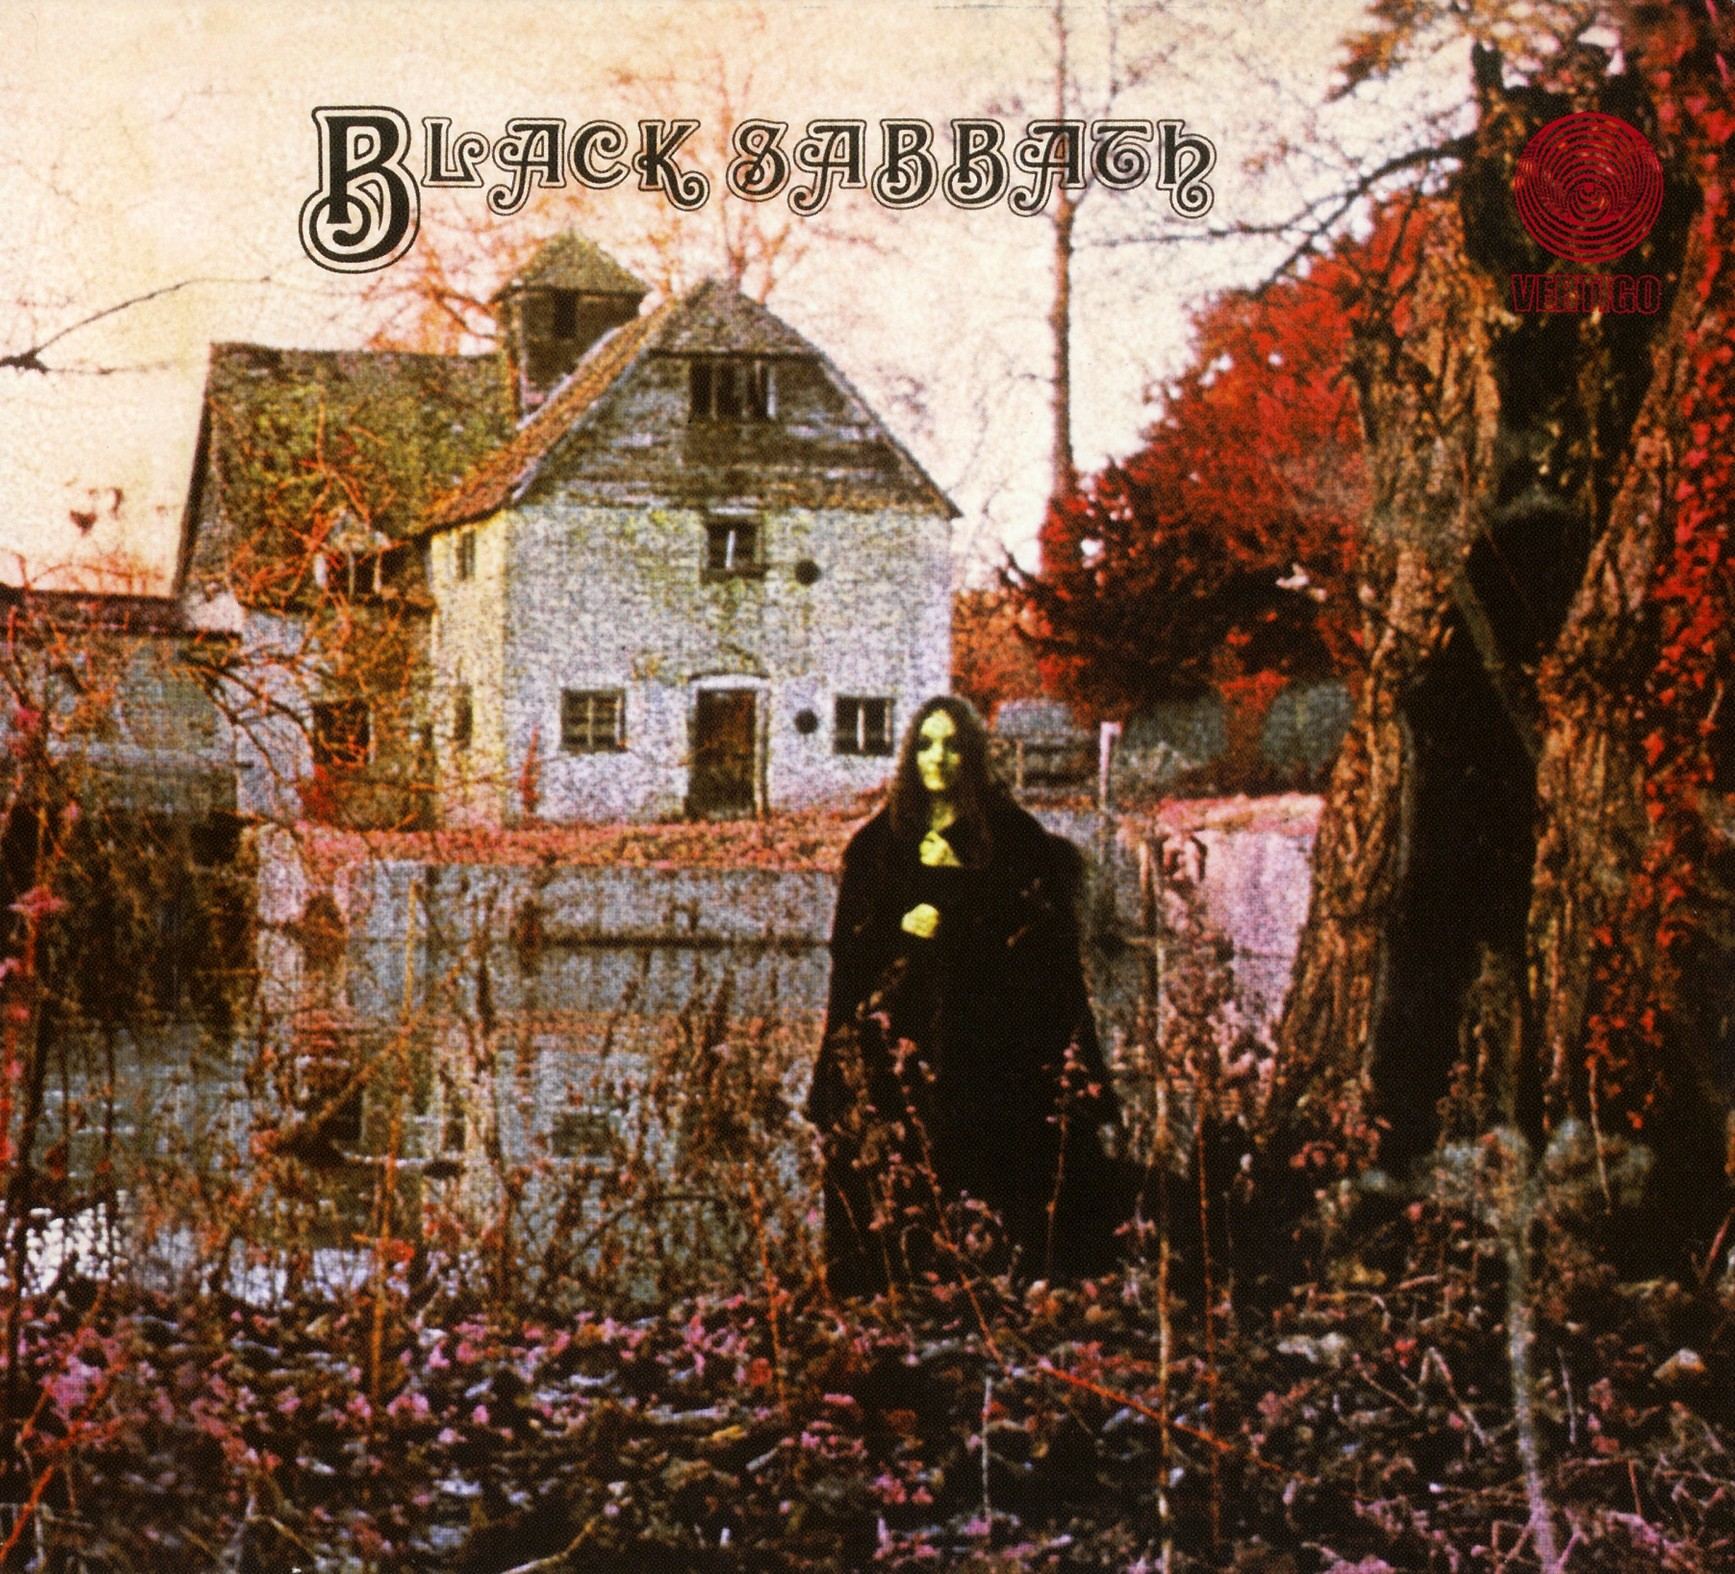 Black-Sabbath-album-cover